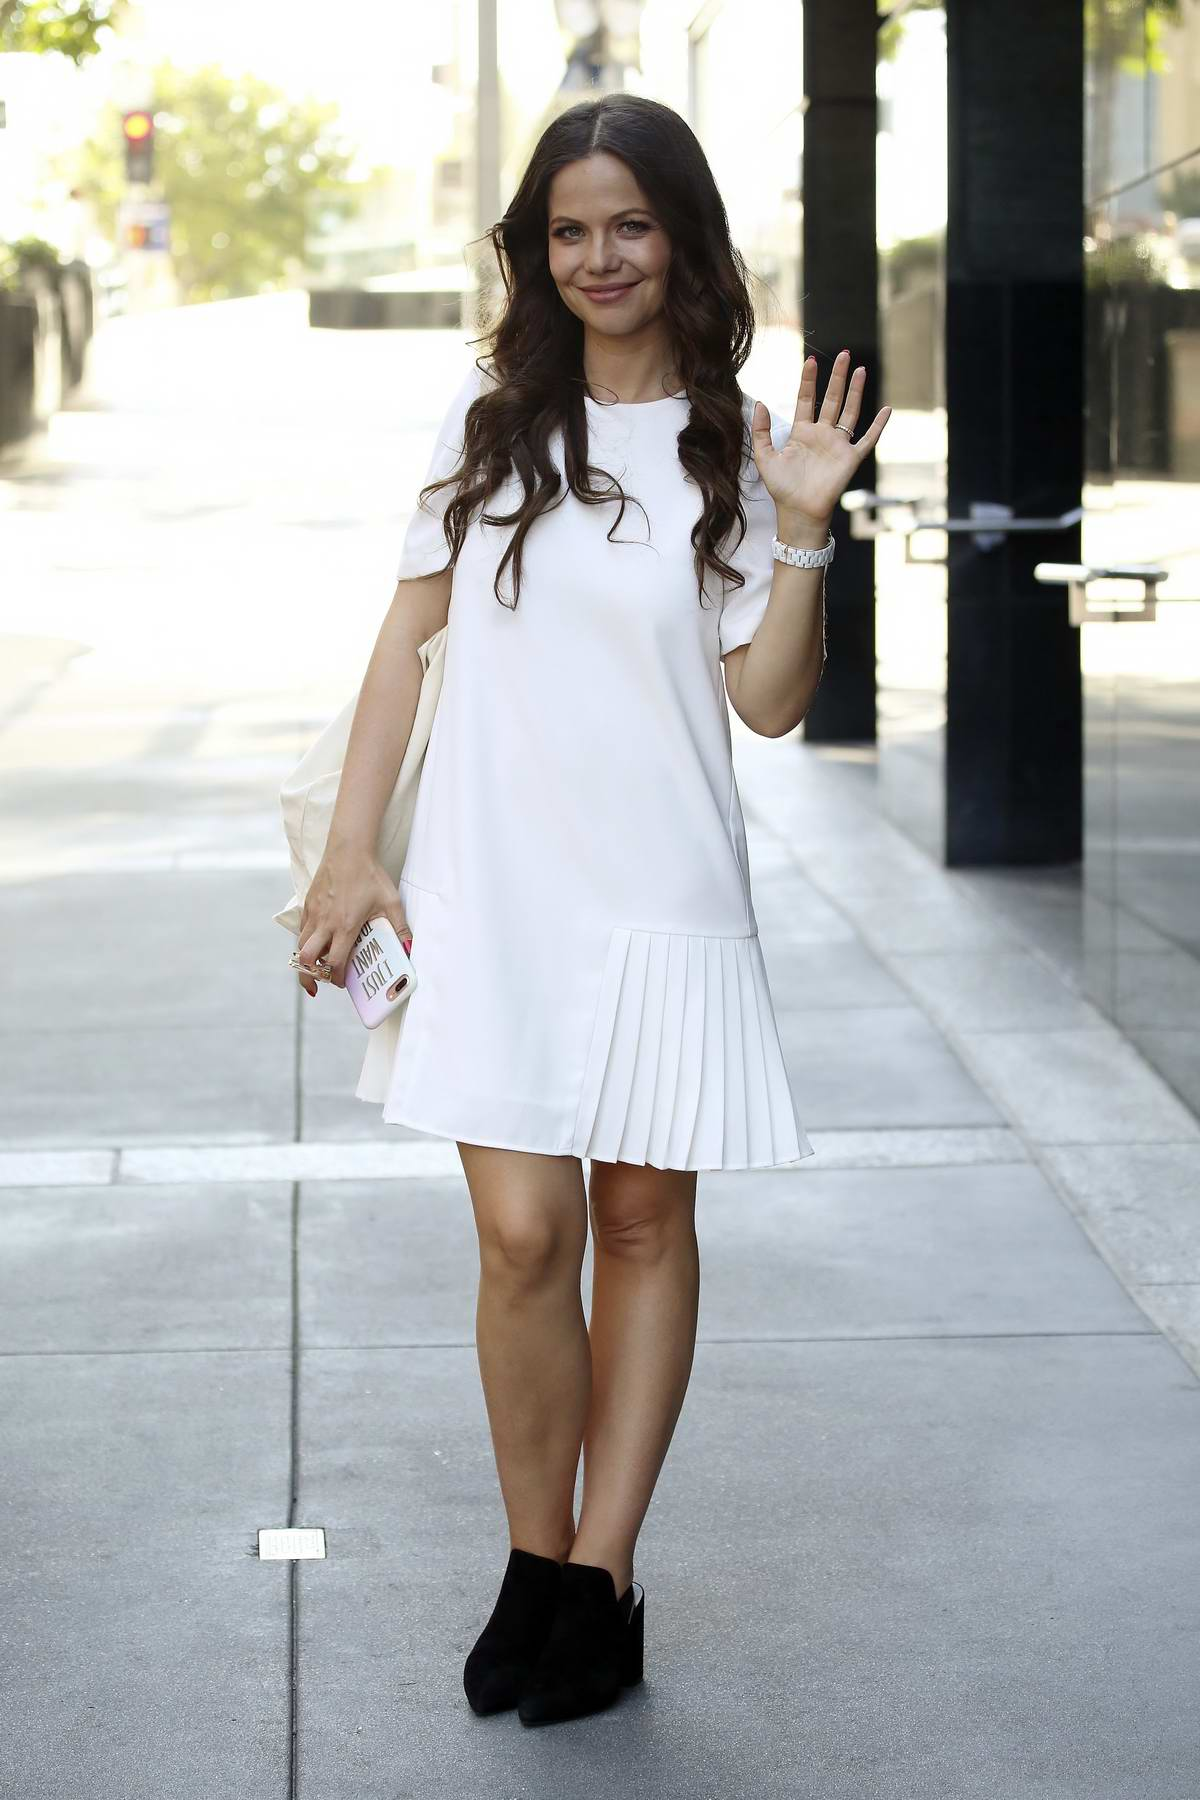 Tammin Sursok is all smiles as she steps out in a white dress while shopping in Los Angeles